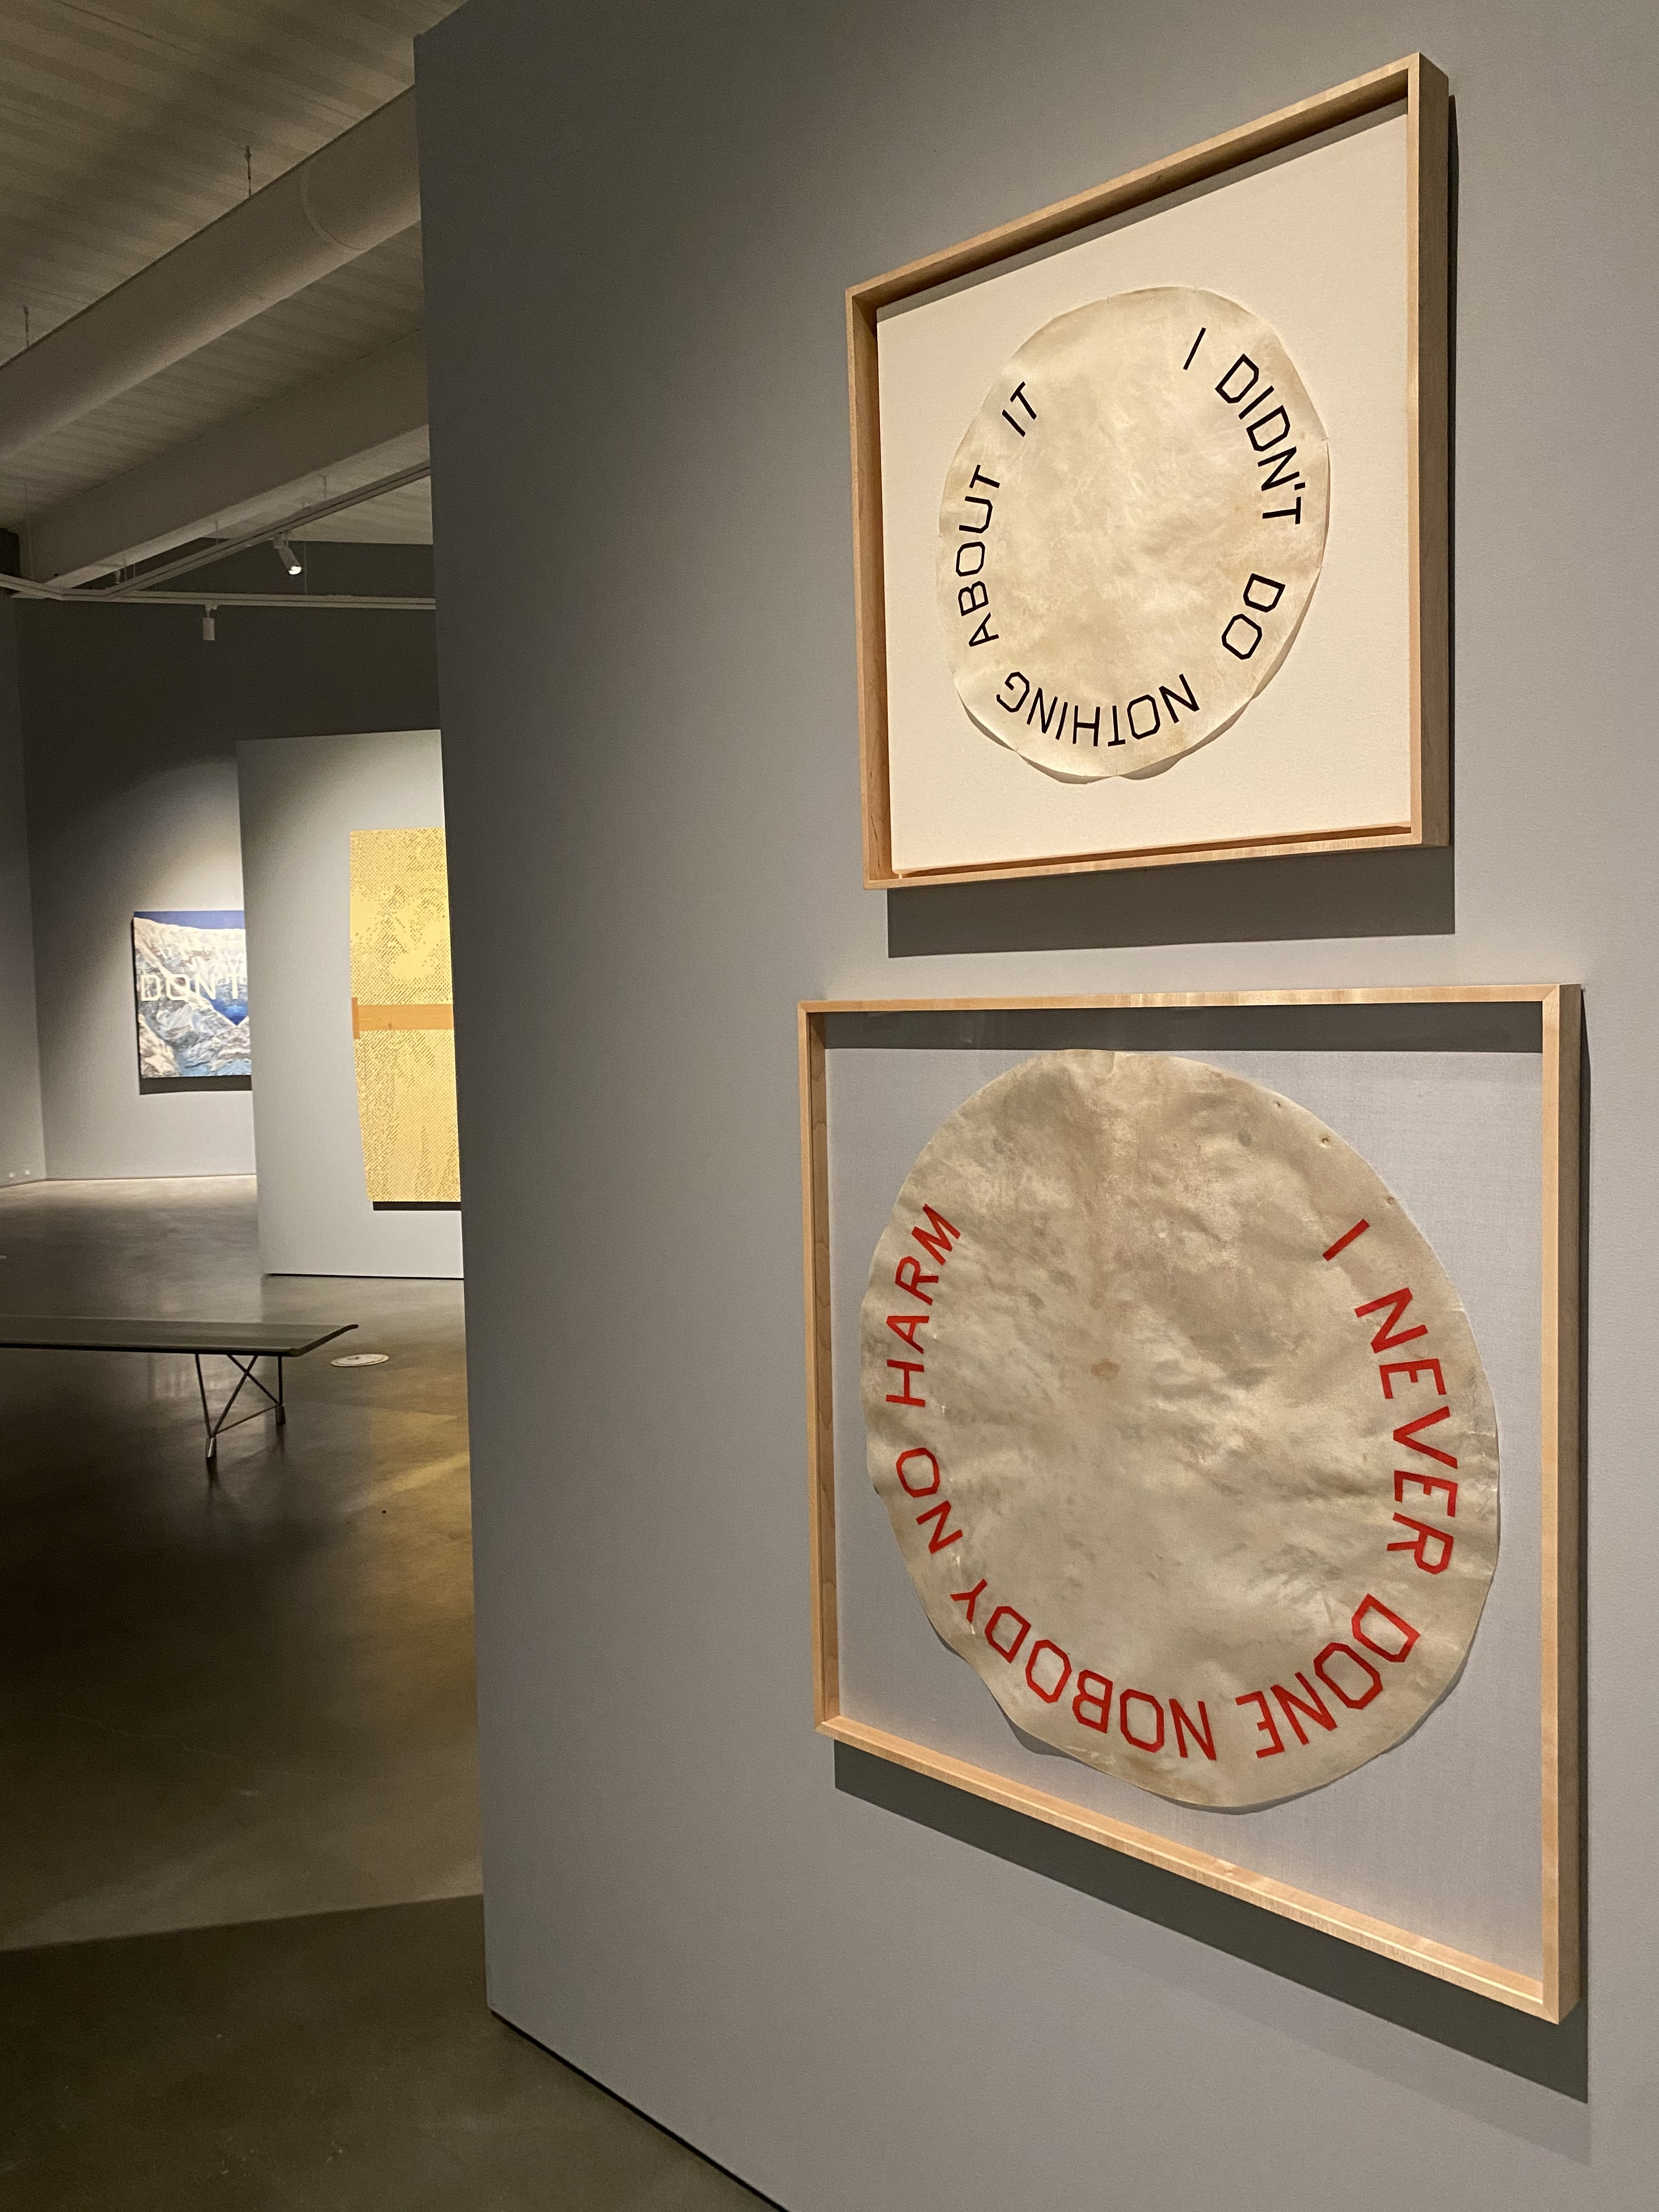 Two framed works of art depict drum skins with colloquial phrases imposed on them